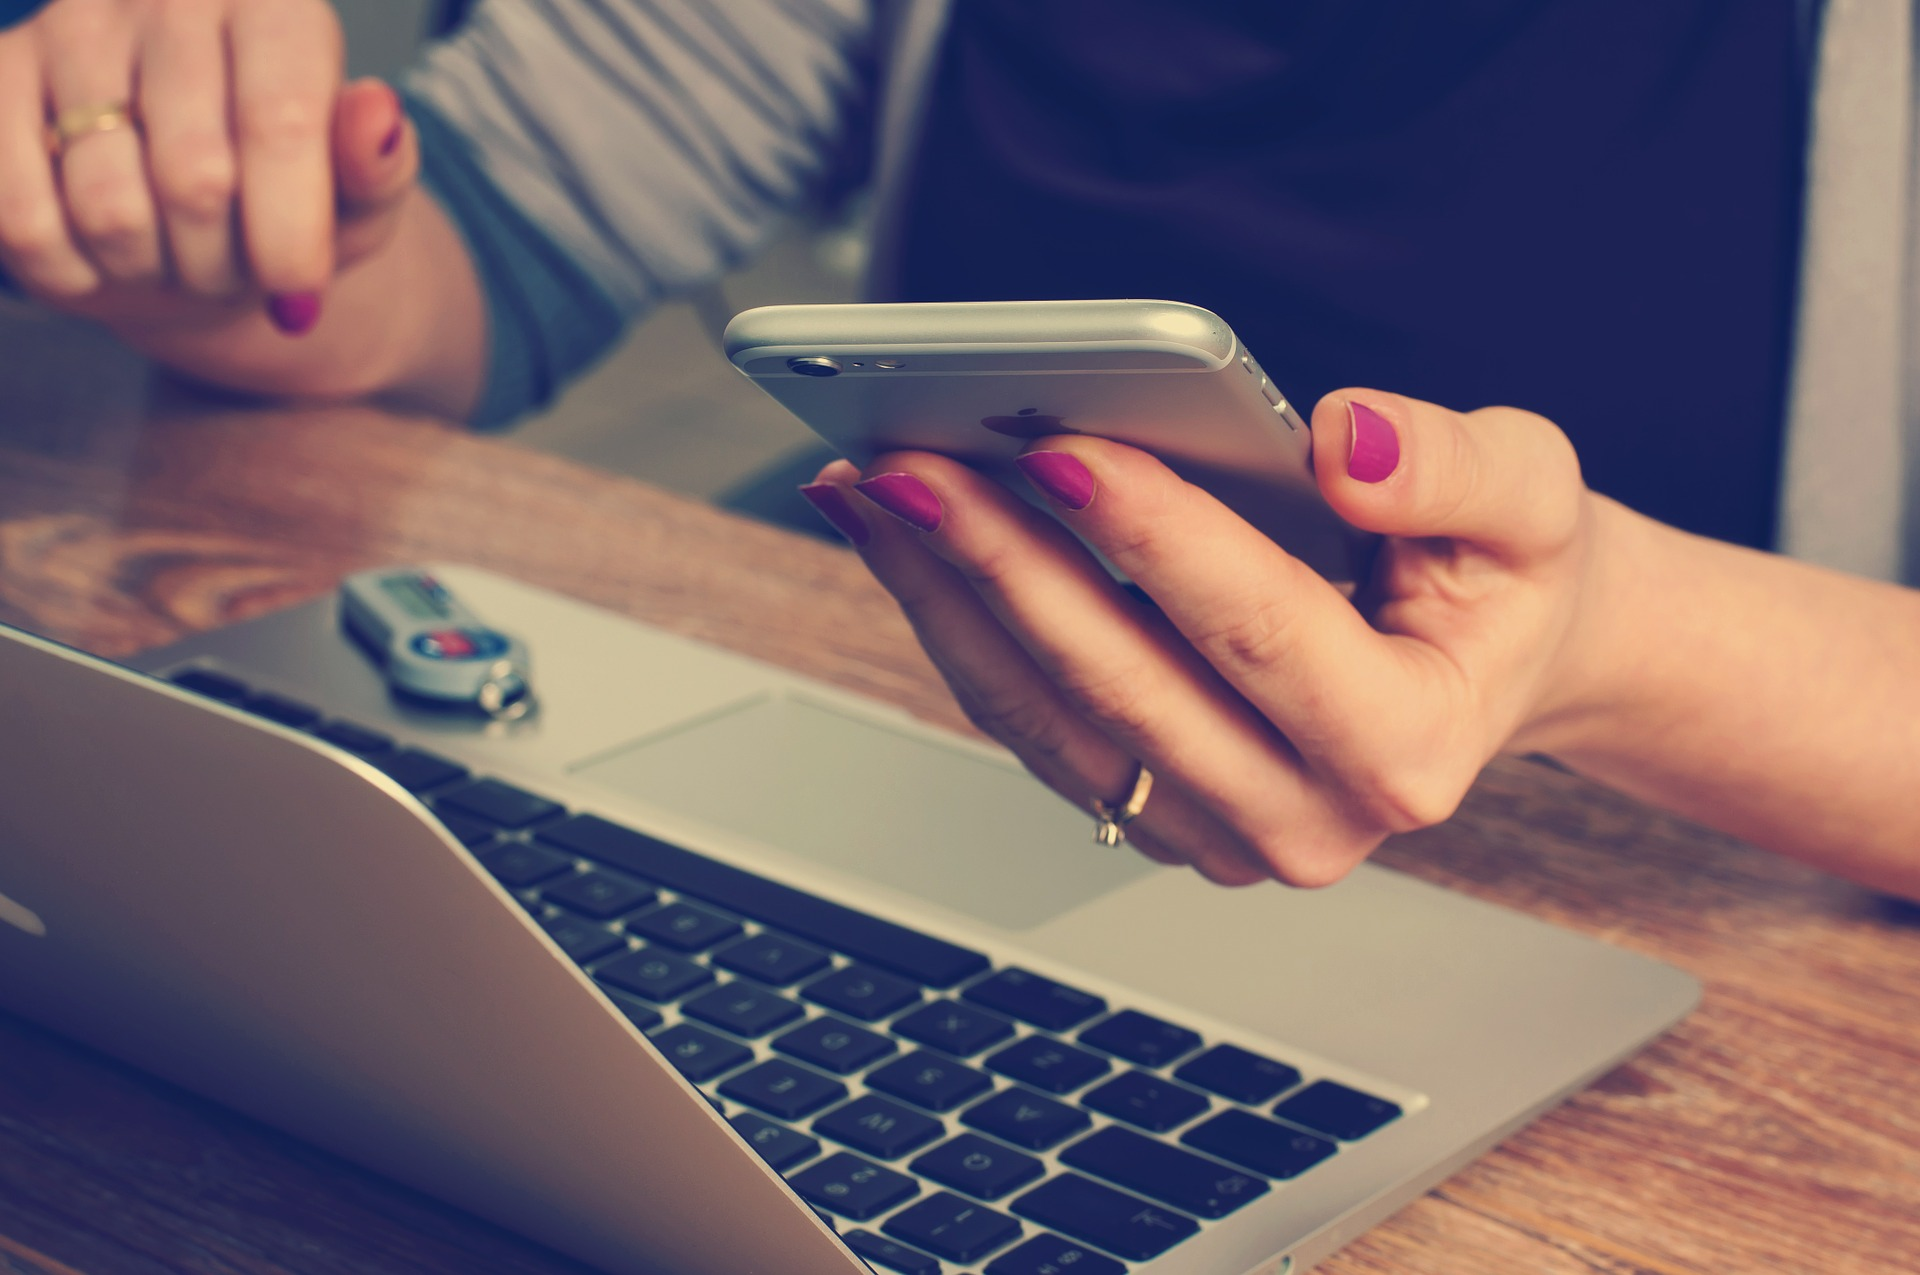 A glimpse into the future of email marketing